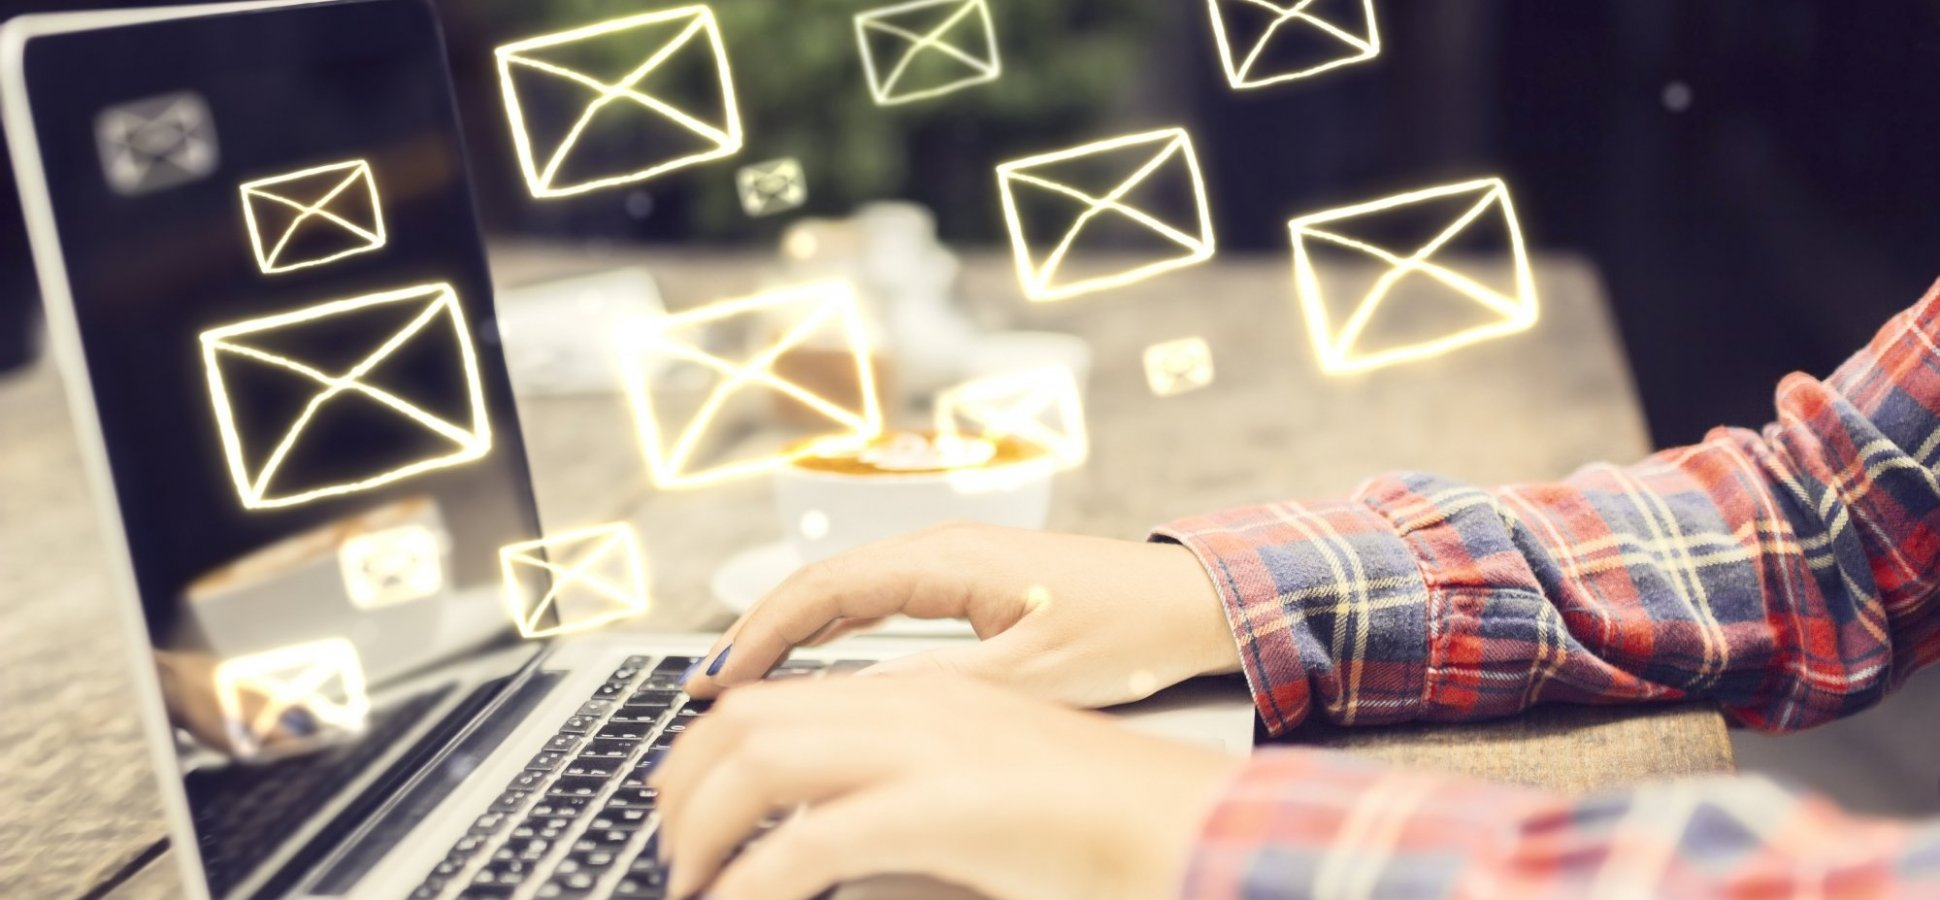 Better Sales Emails Start With The Subject Lines. Here Are 5 Ways To Fix Yours